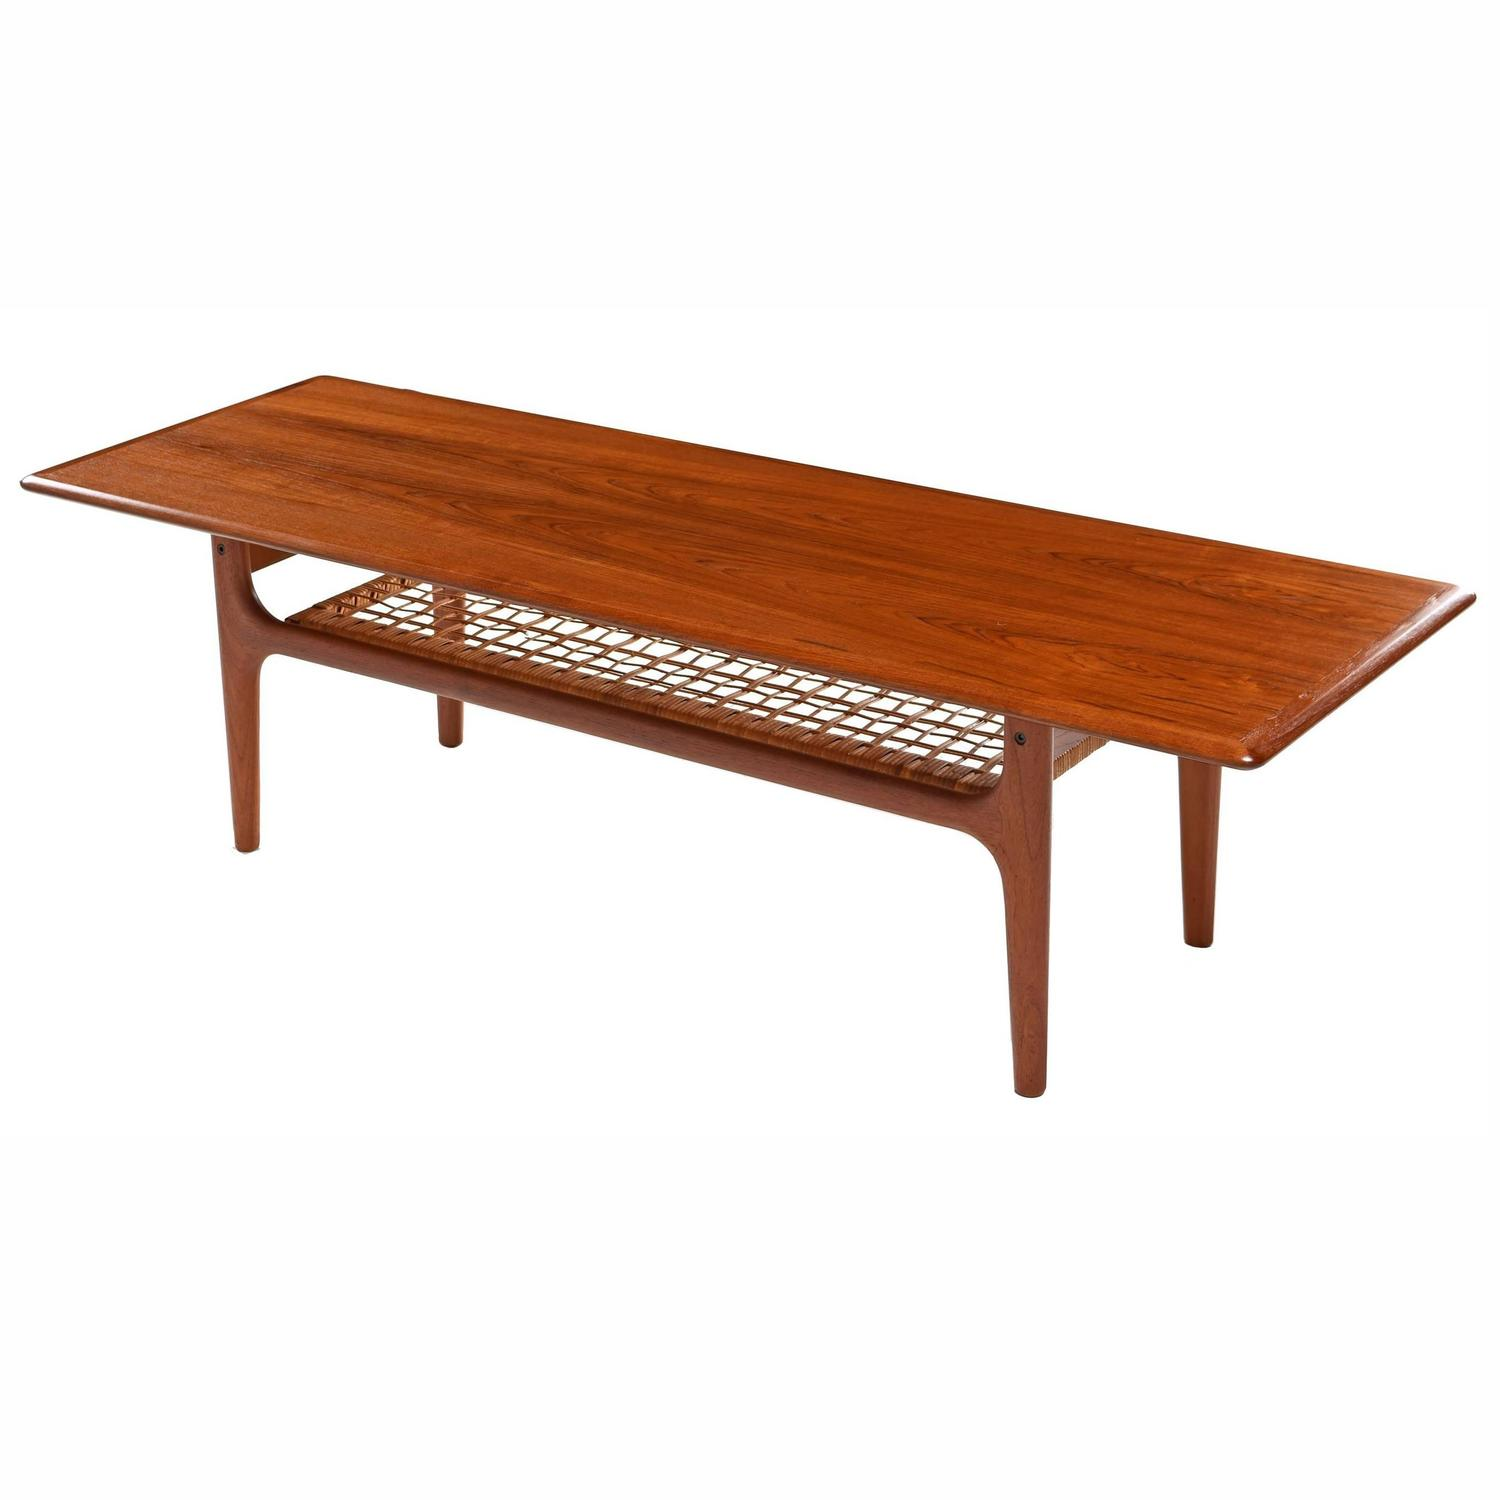 Danish Coffee Table by Trioh M¸bler with Teak frame and Cane